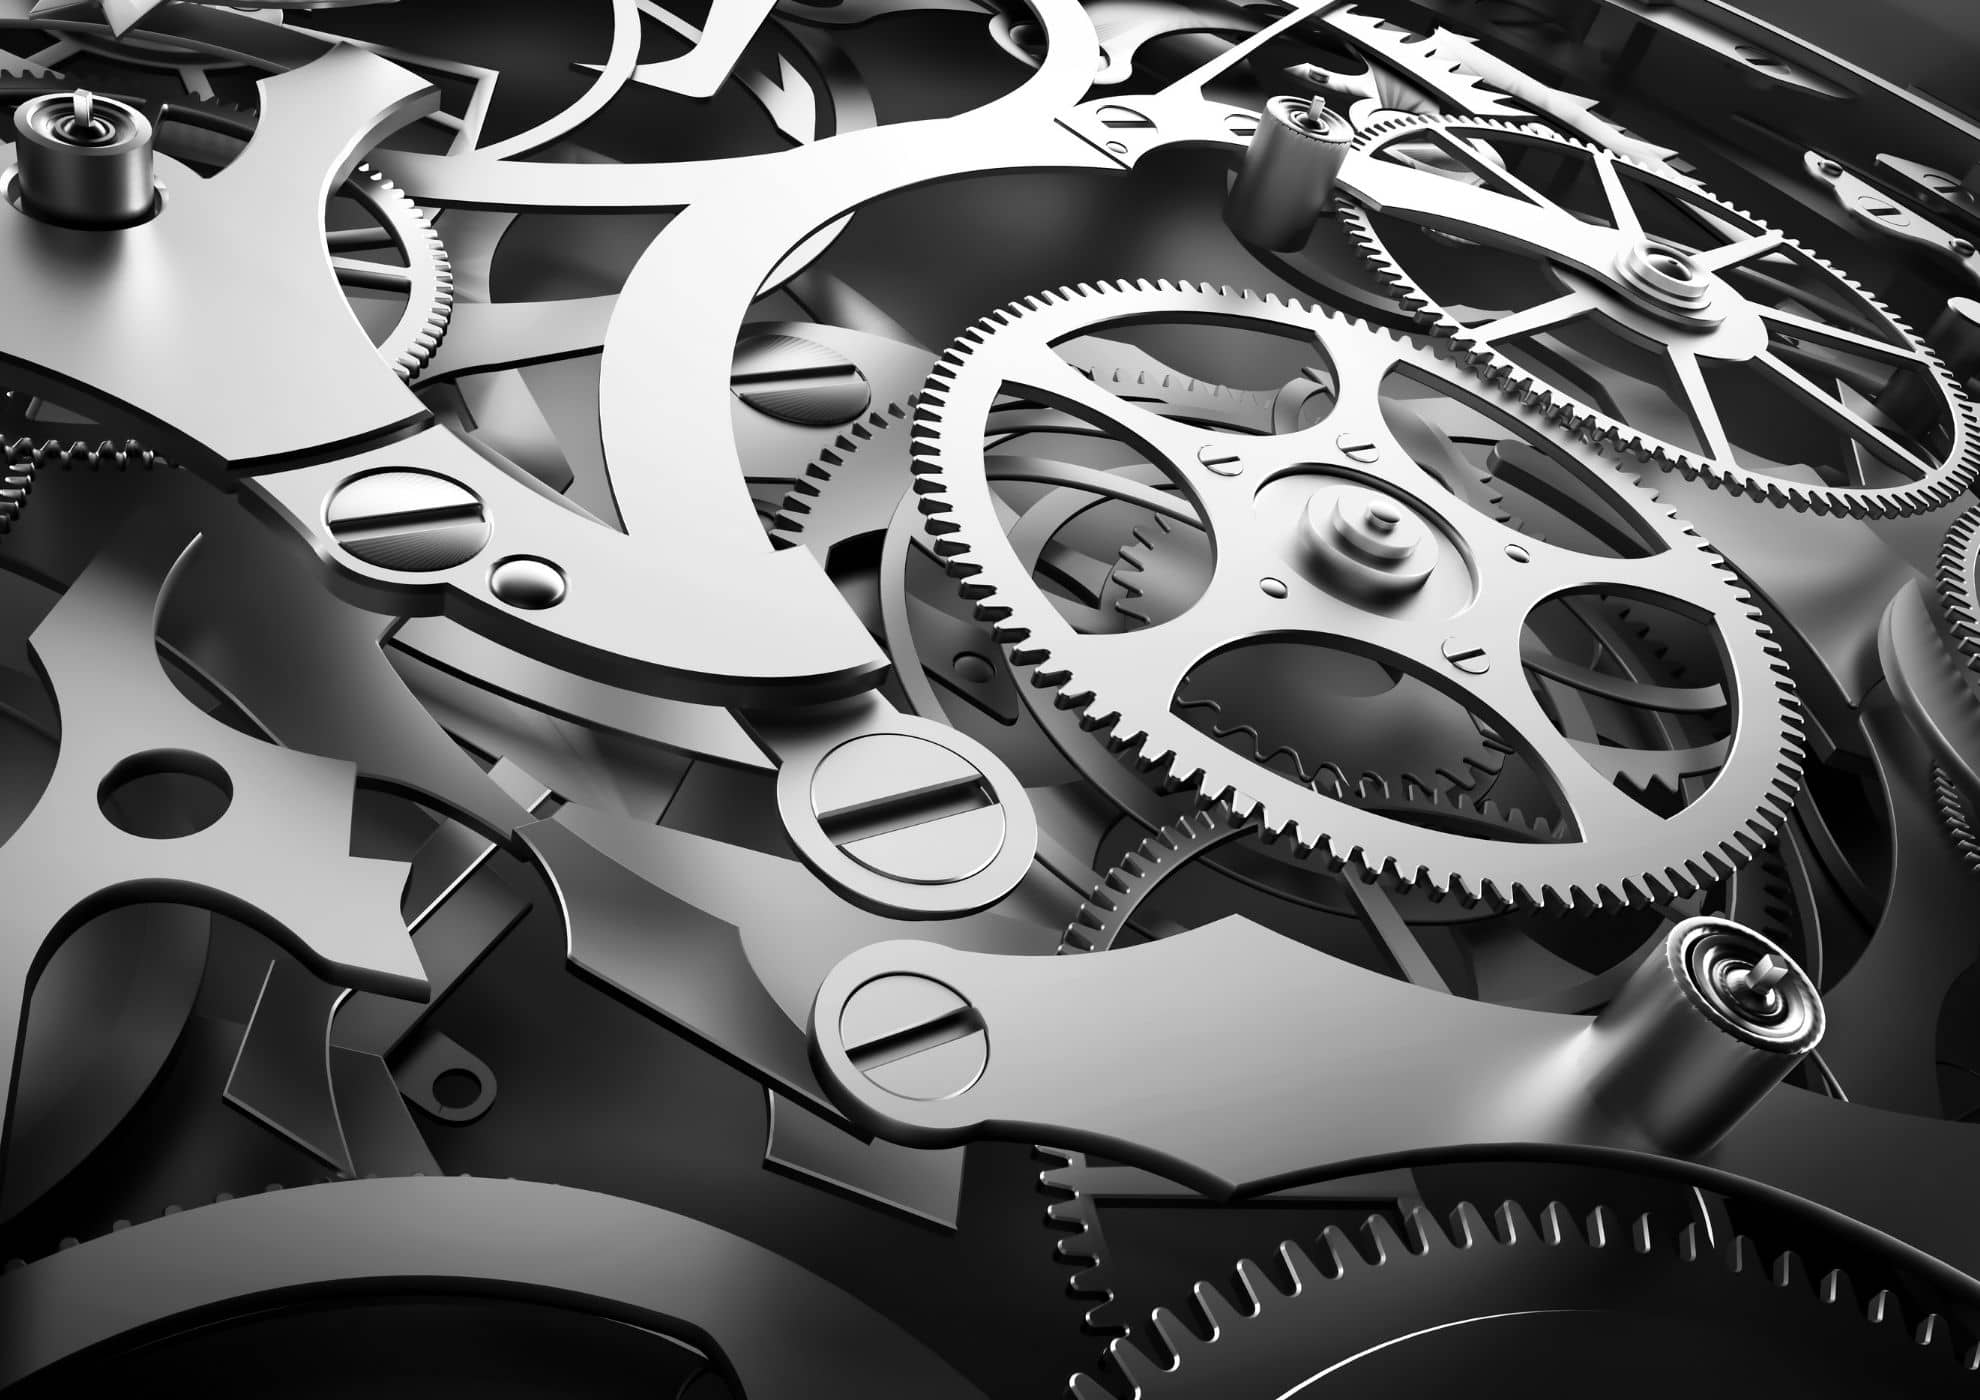 gears.featured image (1)